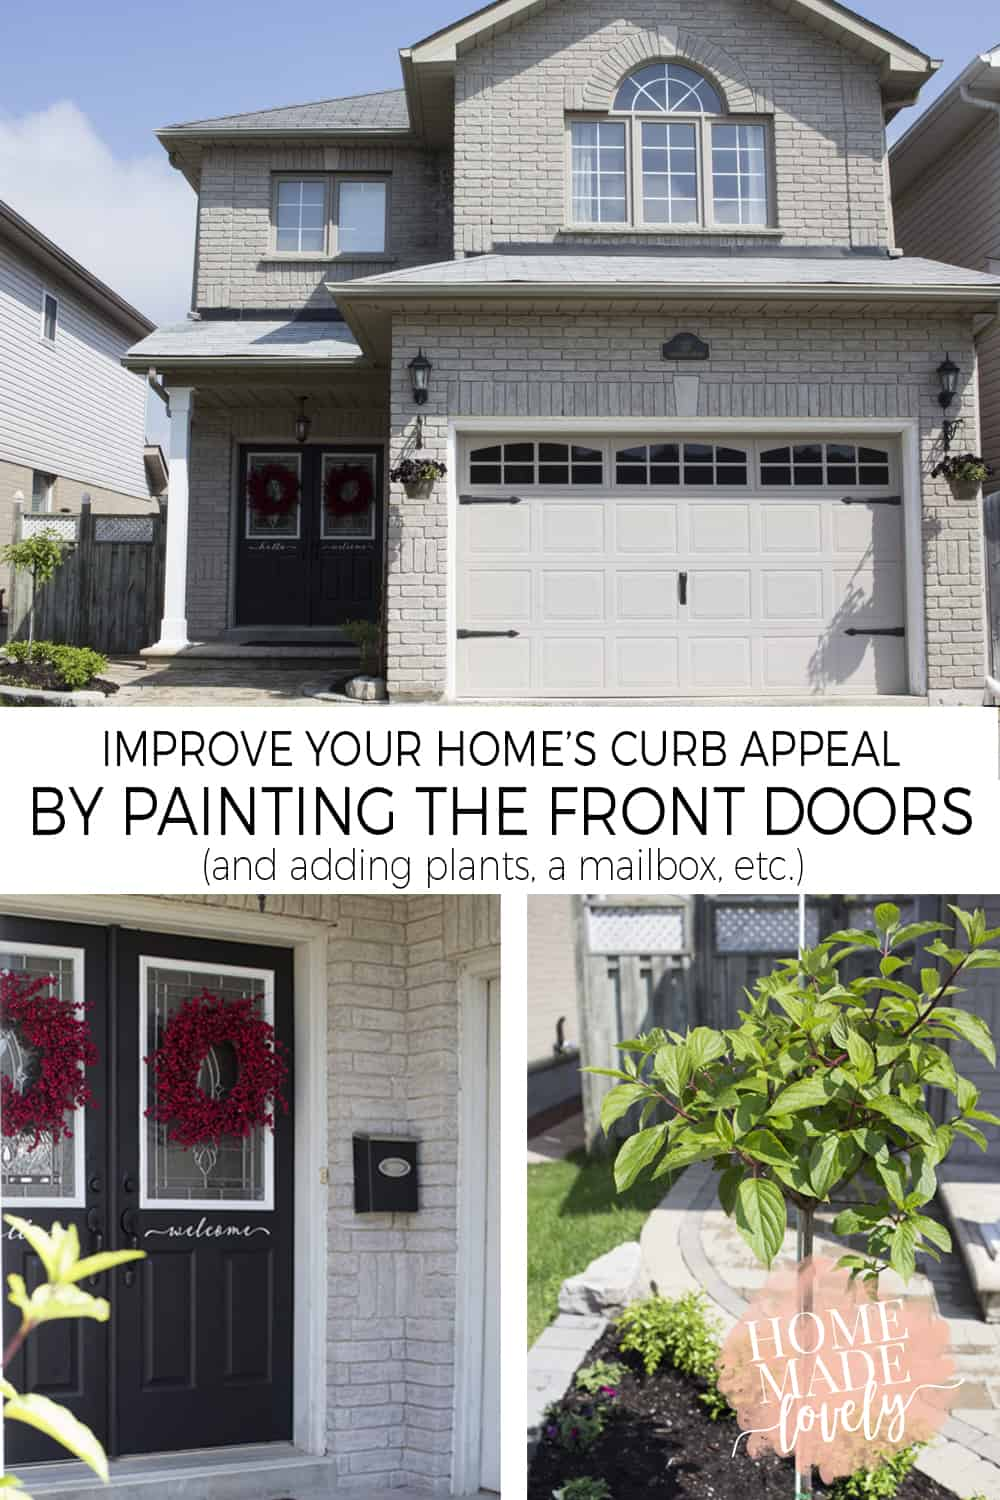 Updating your curb appeal is easy when the weather cooperates! We've already added windows and hinges to the garage door. Now we're painting the front doors black and adding plants!